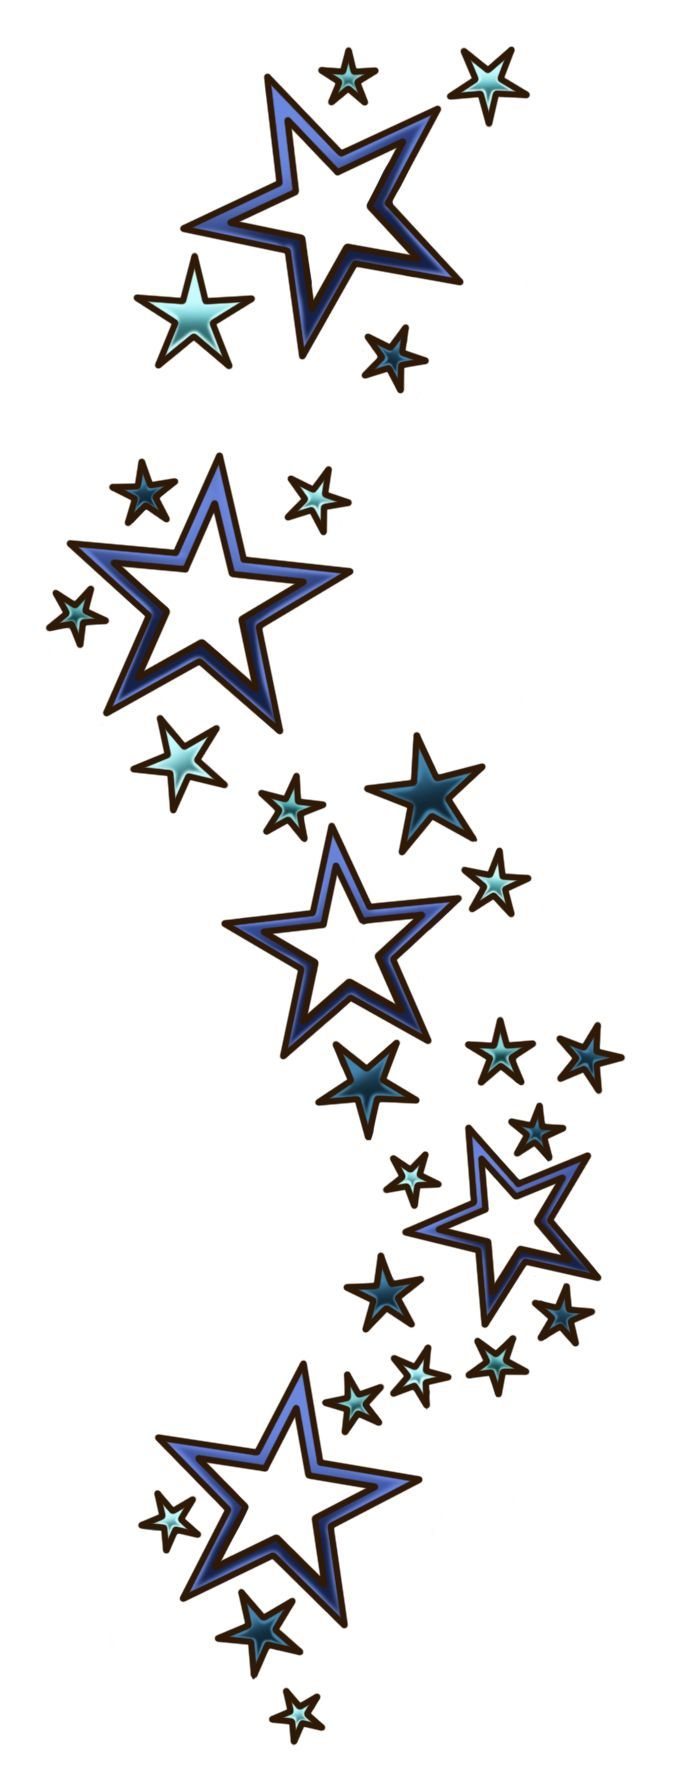 Star Tattoos Designs Stars With Double Borders Keep The Negative Space Add Som Tattoo Tattoodesigns Tattoos Star Tattoos Star Tattoo Designs Leg Tattoos